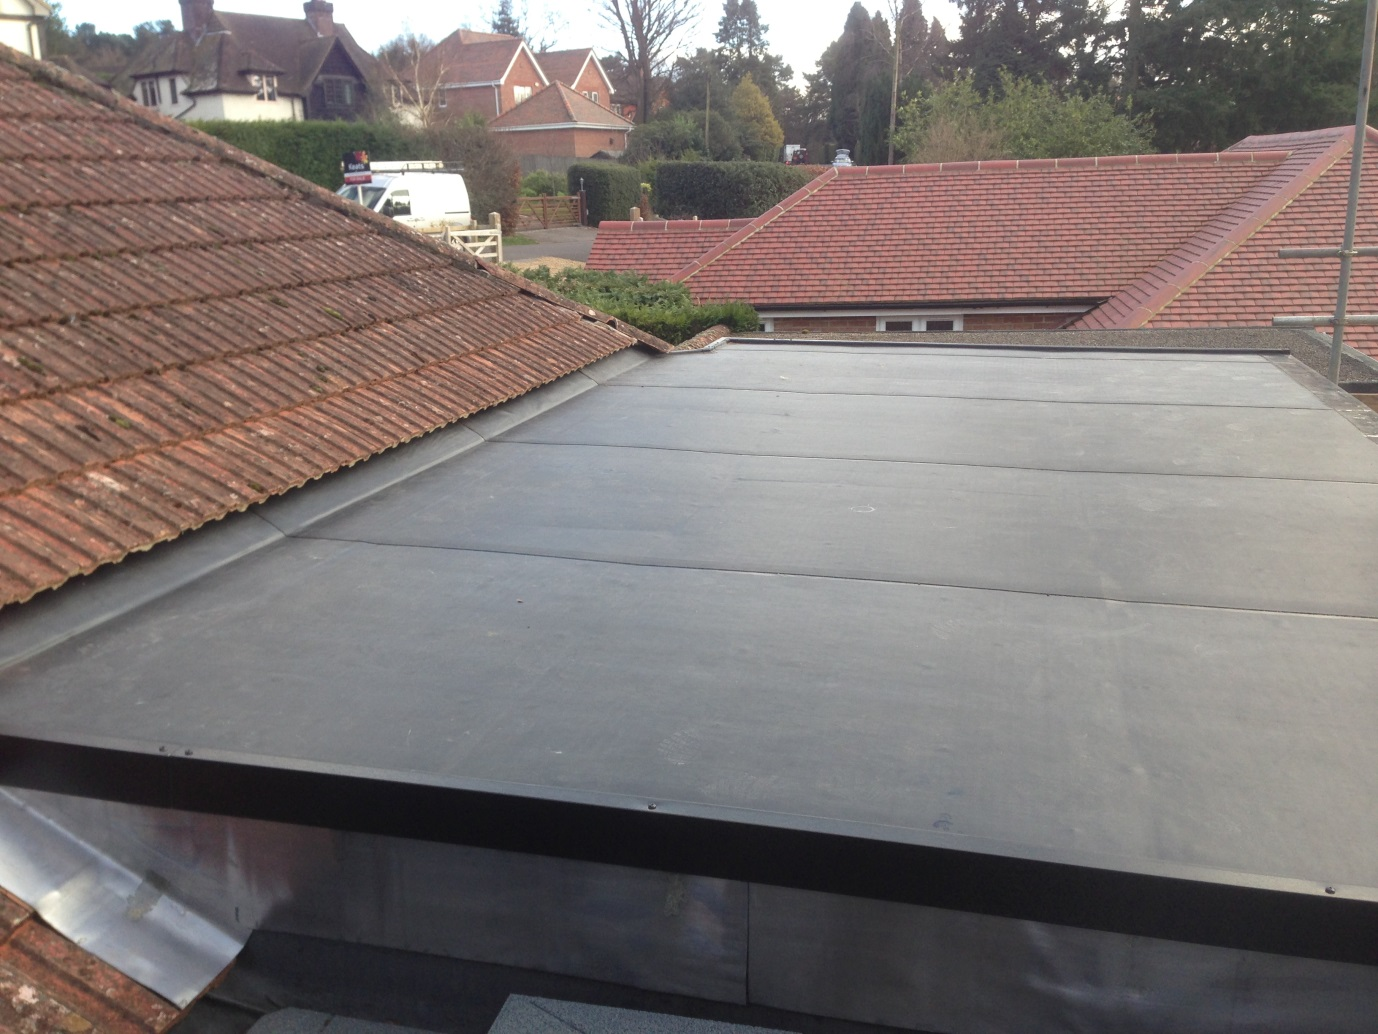 Dormer flat roof construction, repair and replacement with the Classicbond EPDM rubber roofing membrane